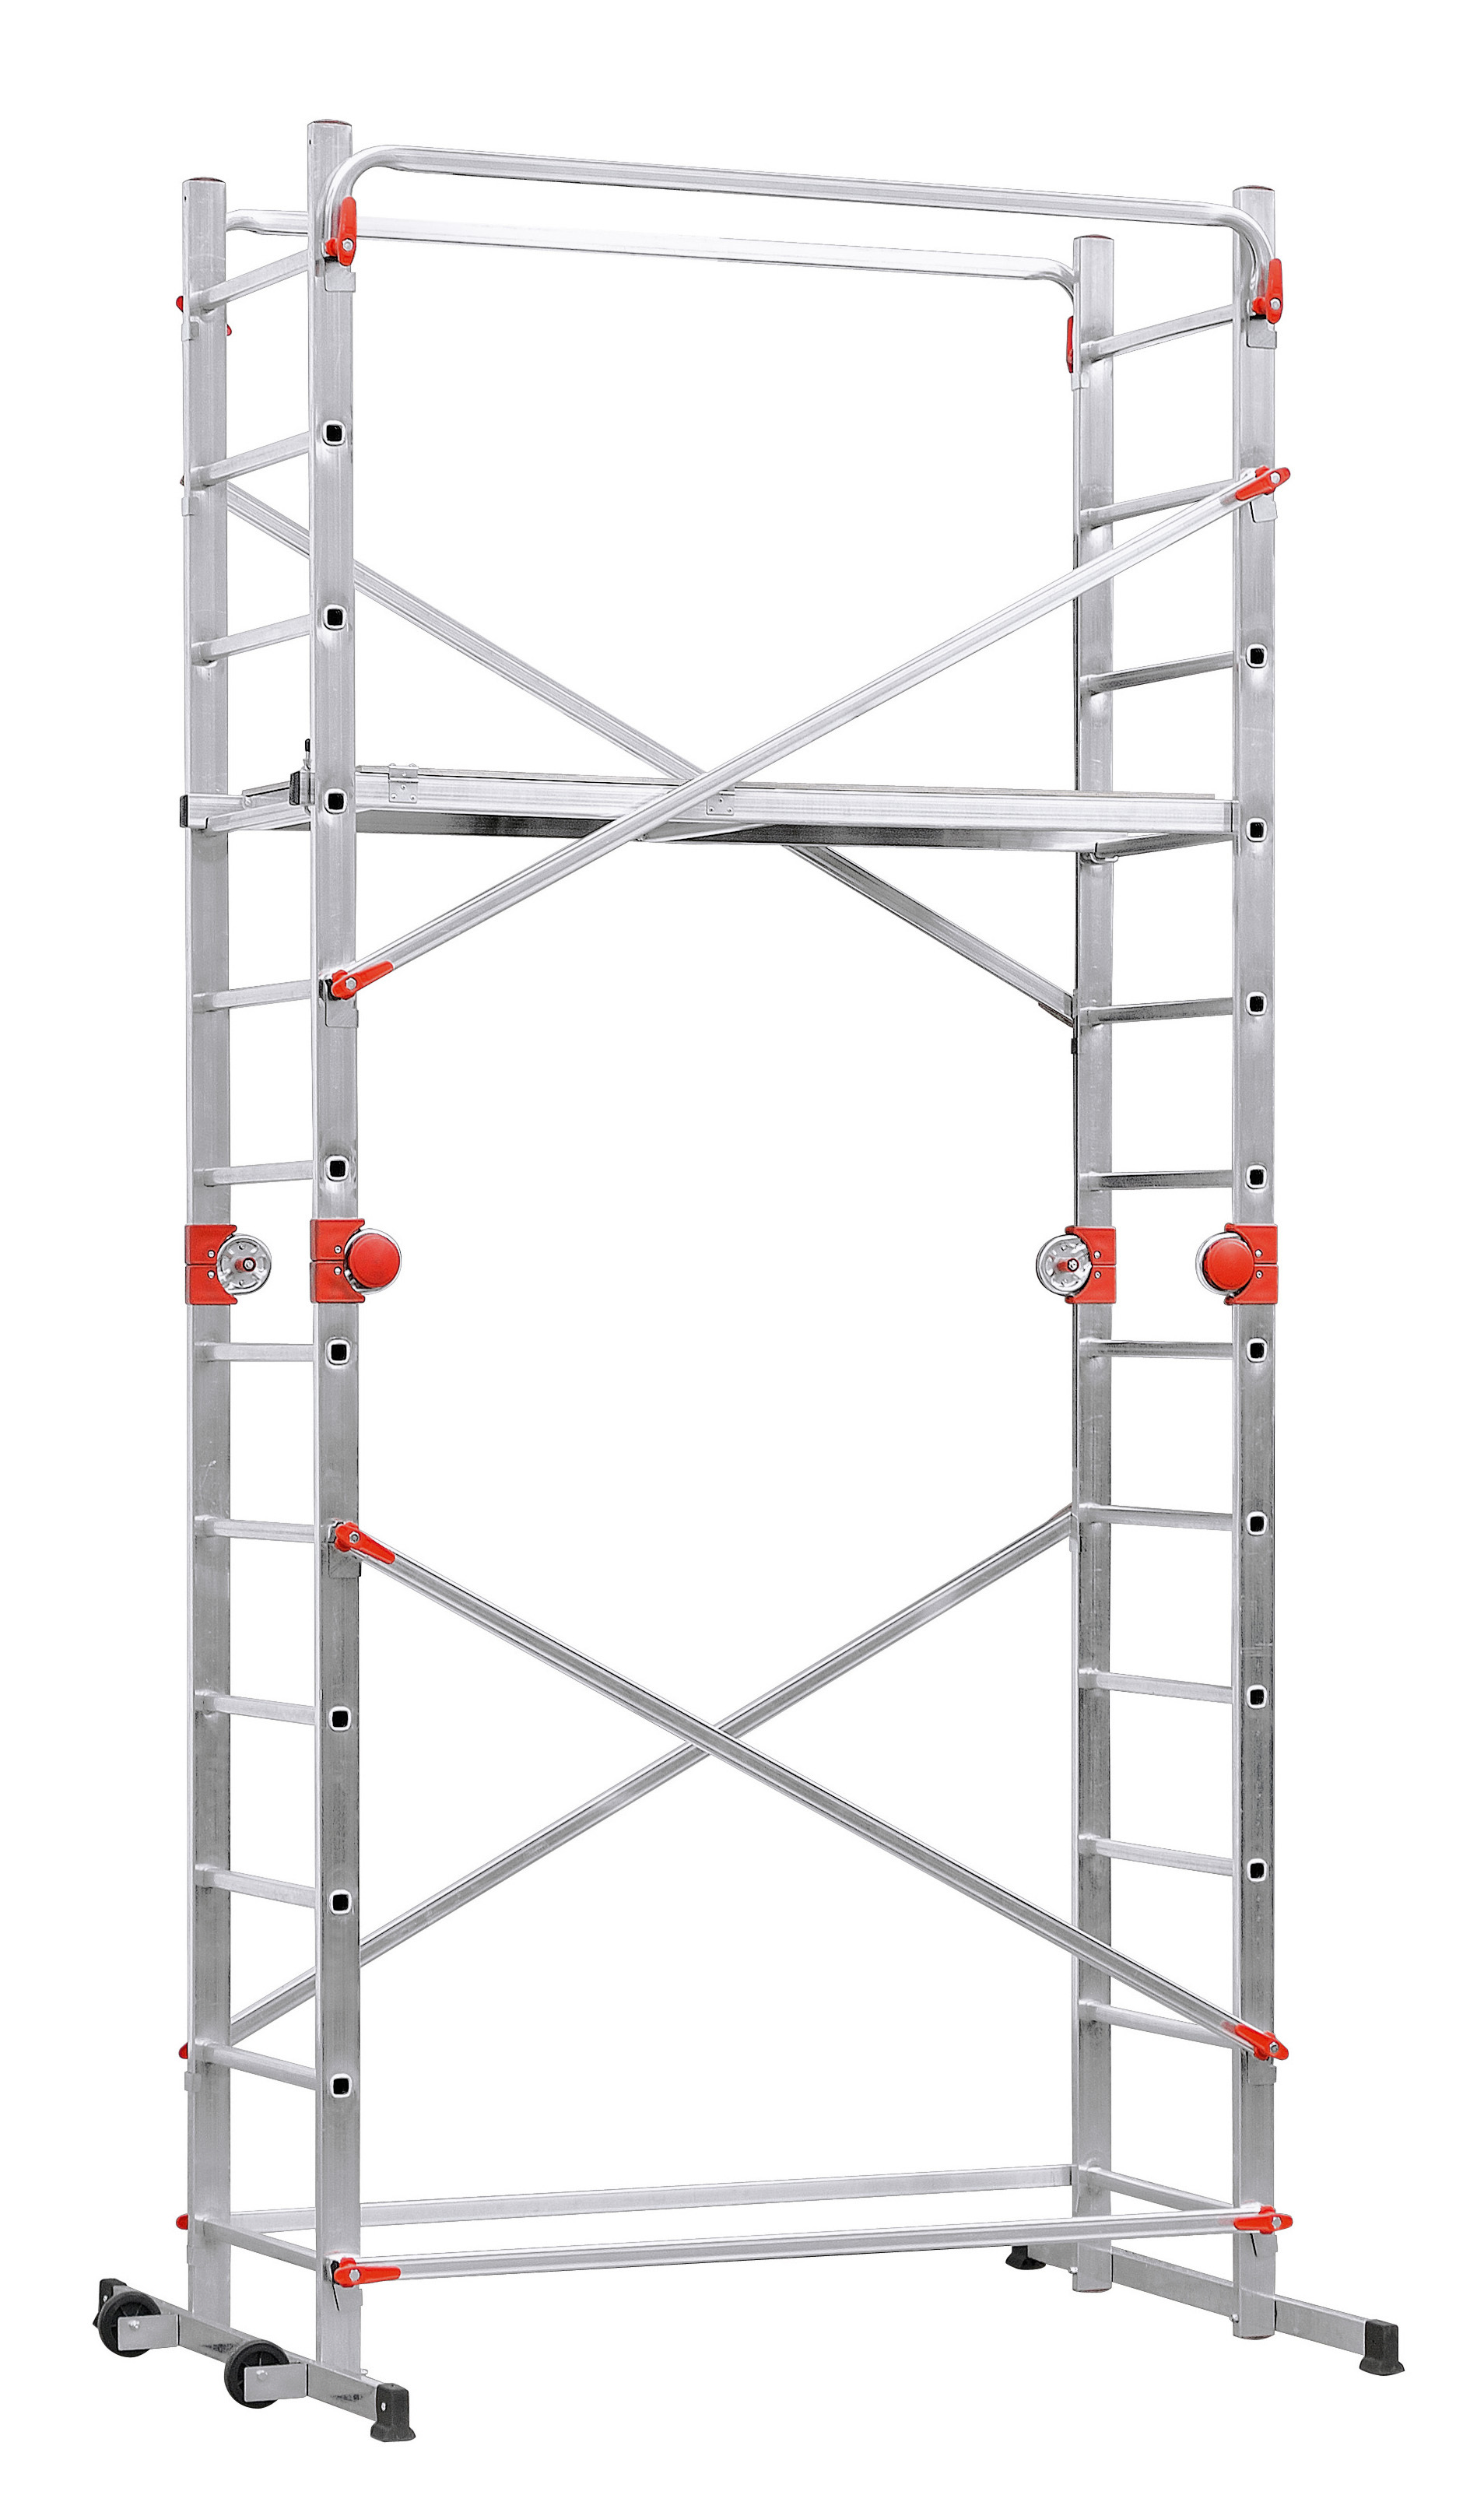 Hailo Aluminium Multifunction  Scaffold + Ladder Combination - 2x12 Rungs HLO-9459-501